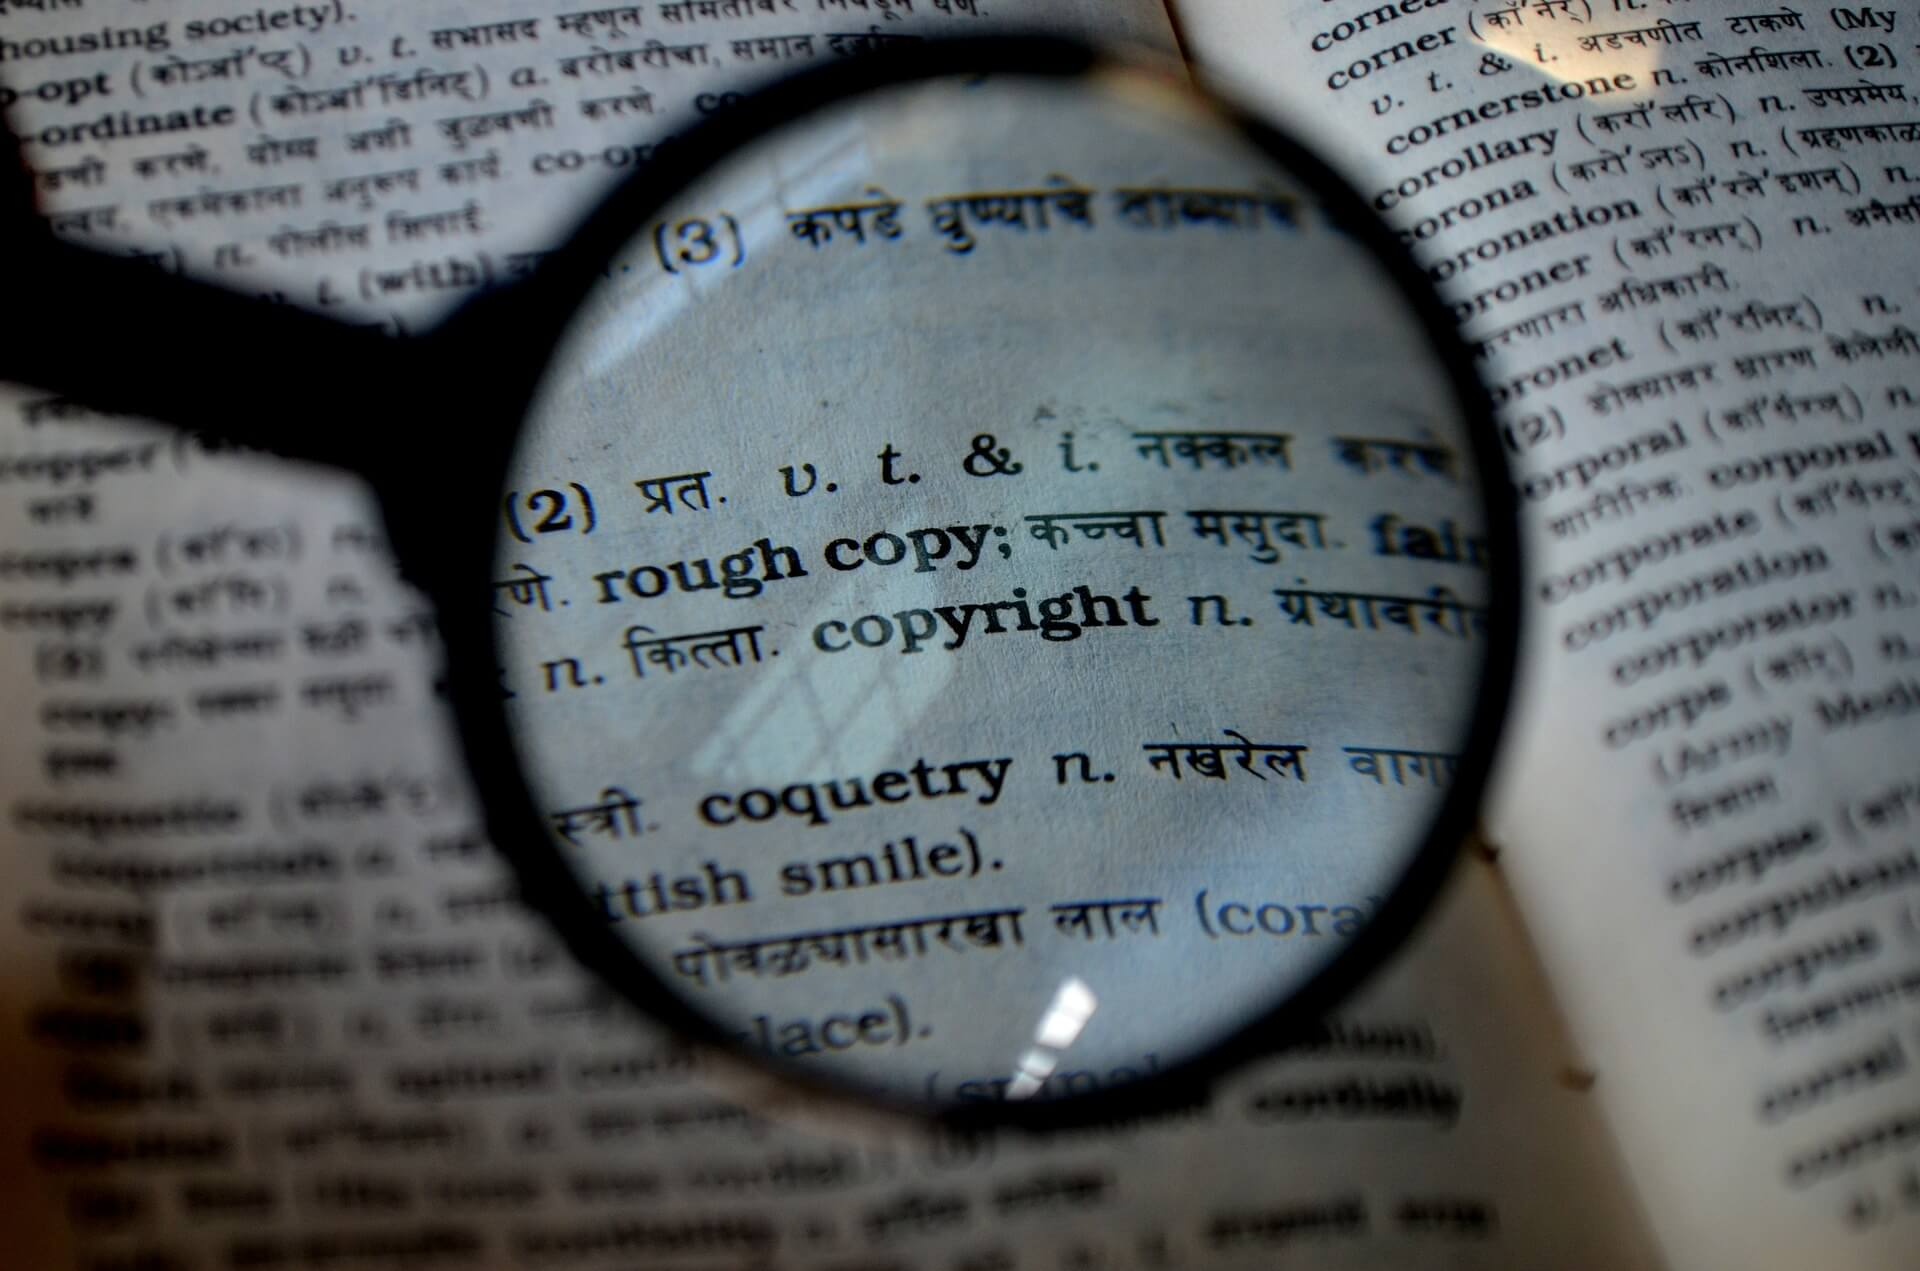 Water4gas - Why Copyrighting Your Business Name Is A Bad Idea